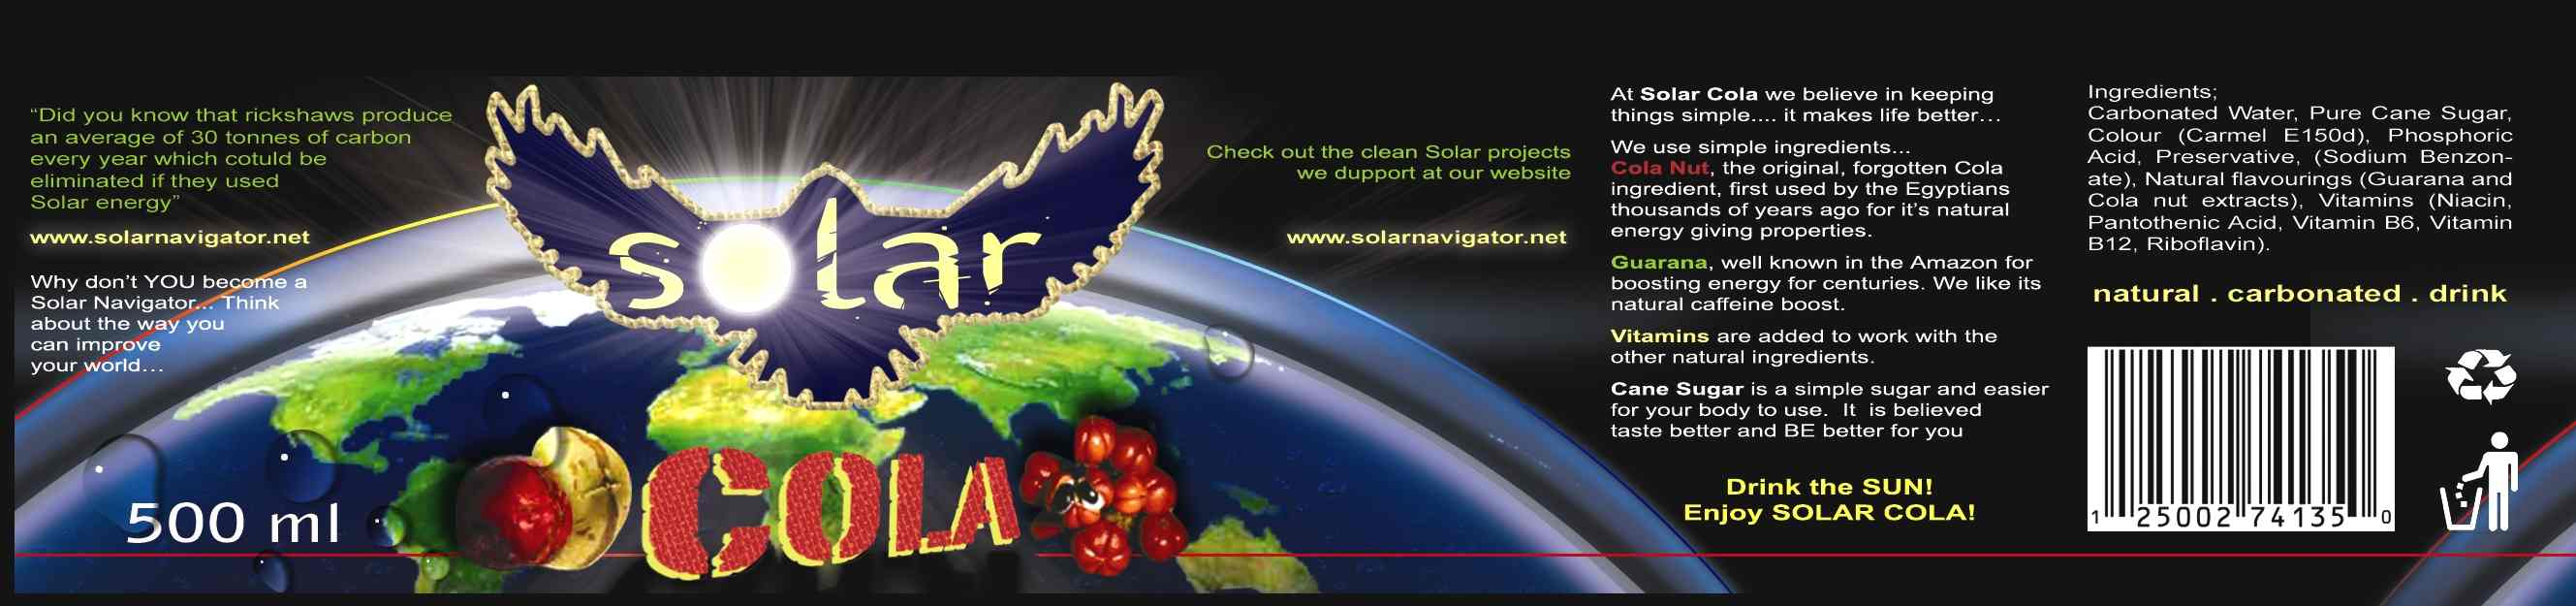 Solar Cola blue planet earth label sample for a 500ml PET bottle